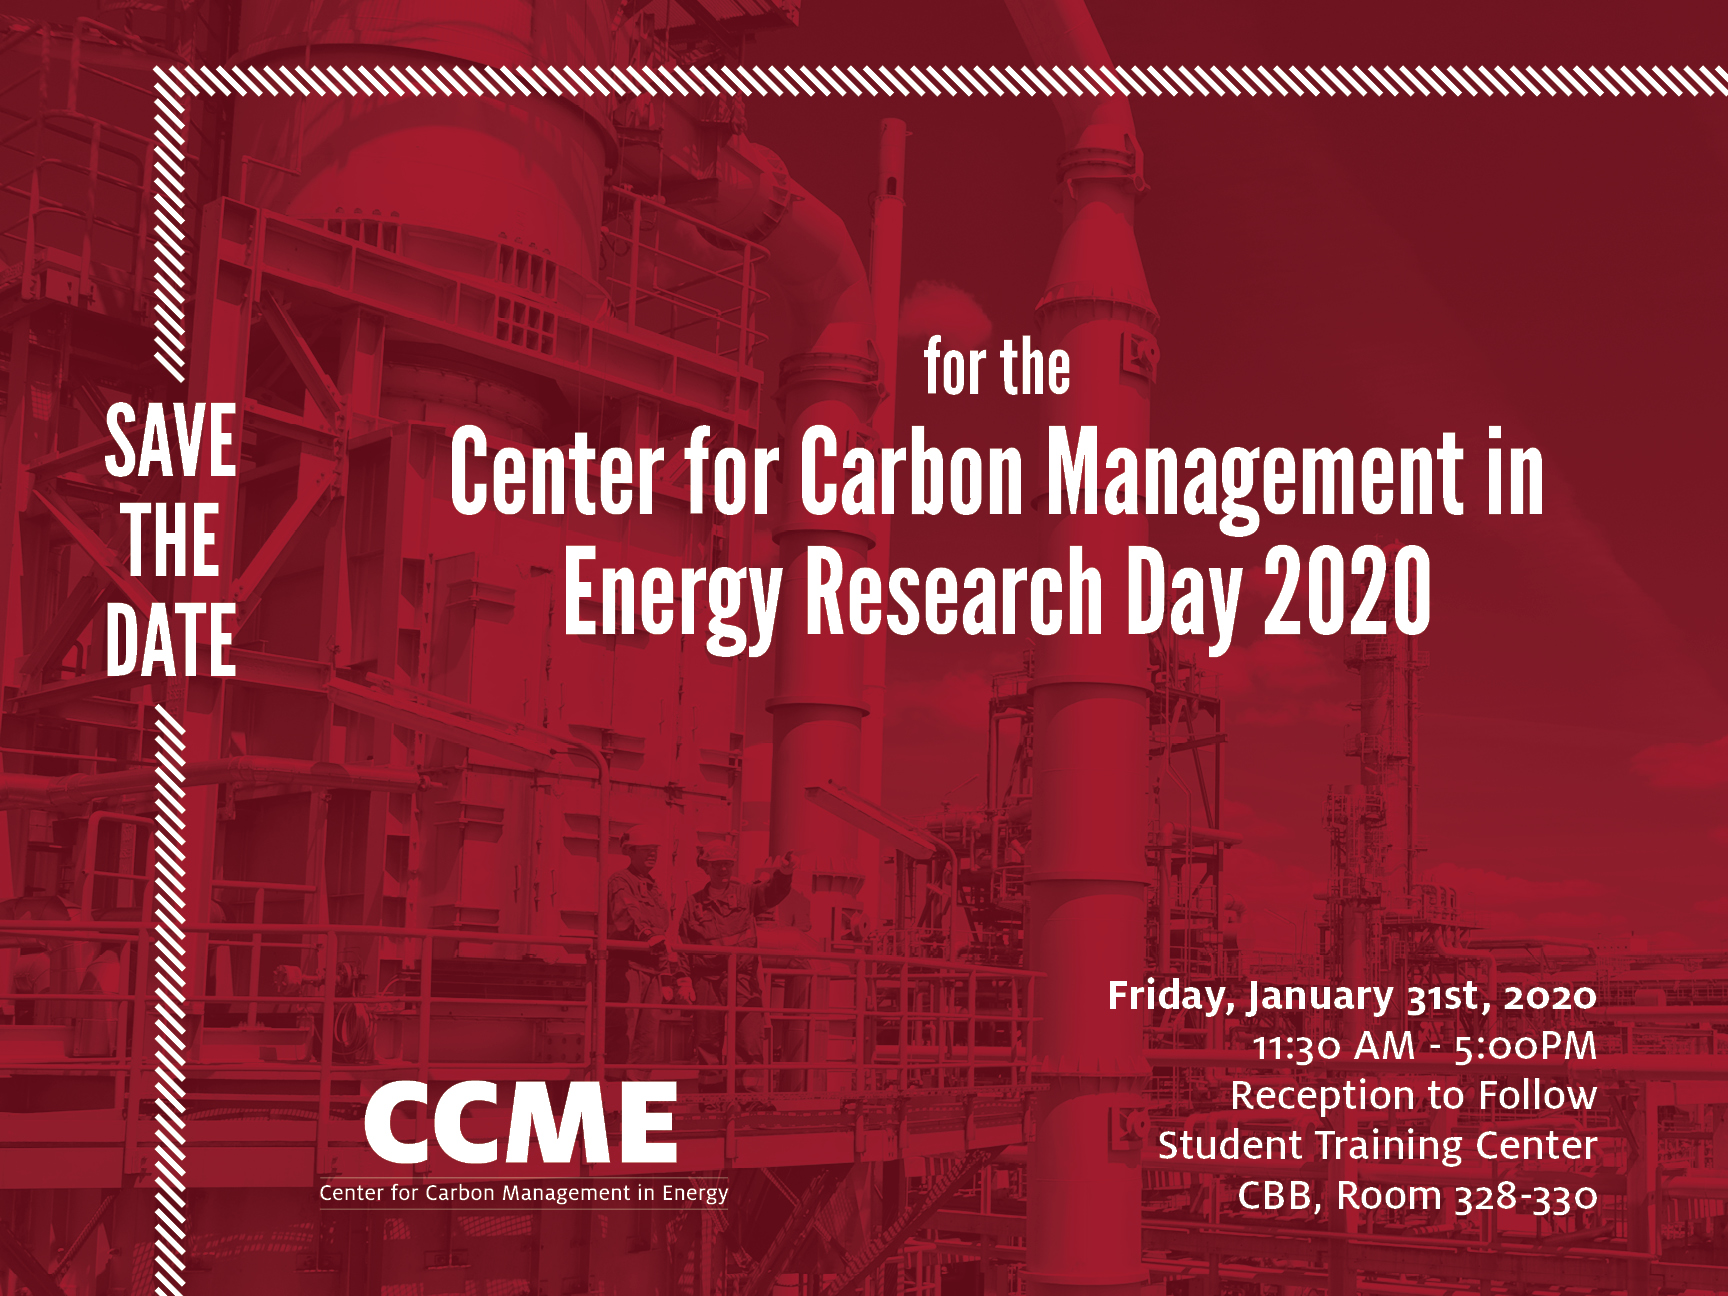 CCME Research Day Image